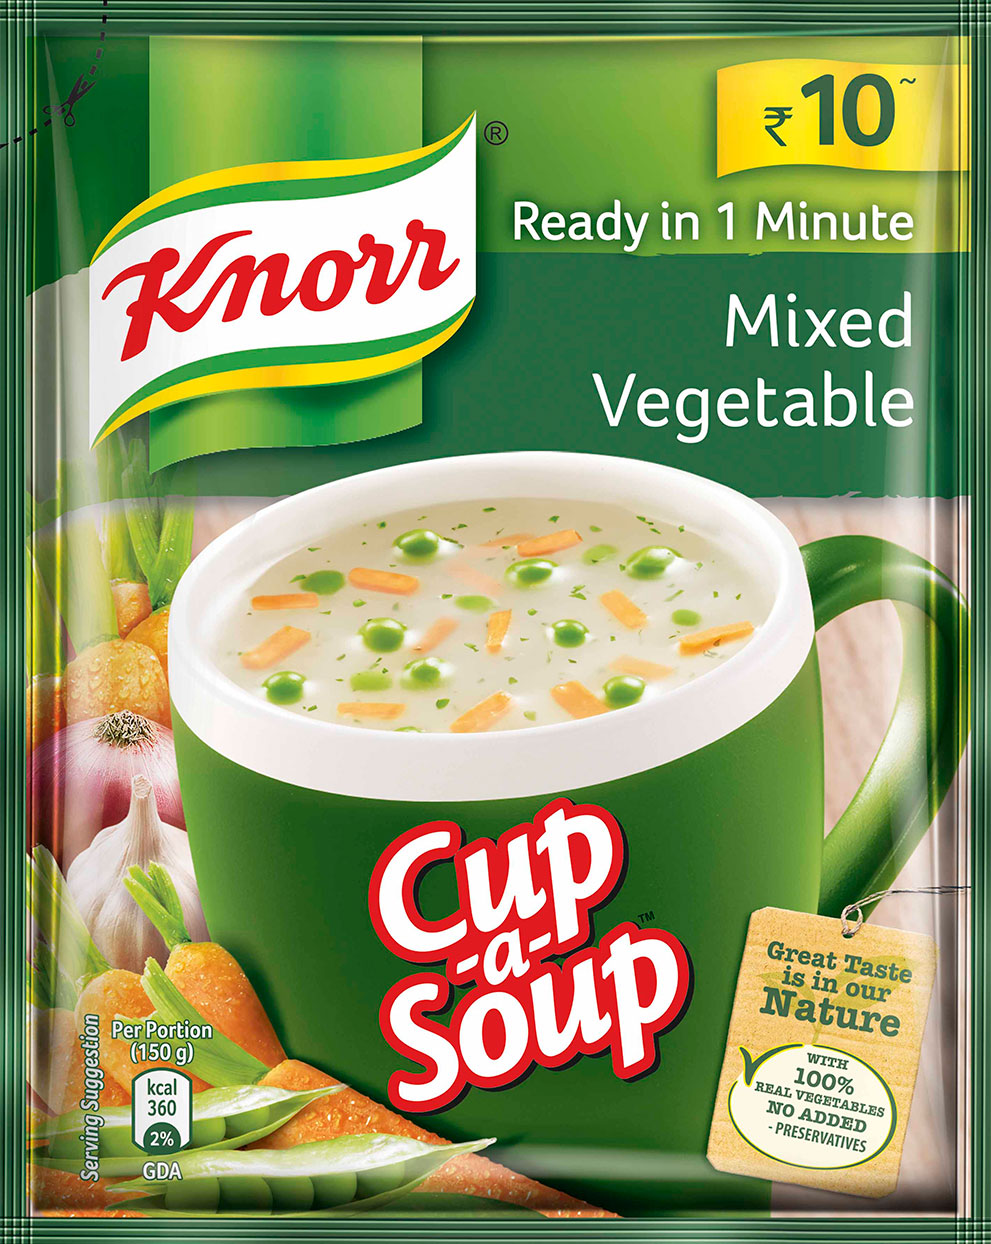 Knorr Mixed Vegetable Soup.